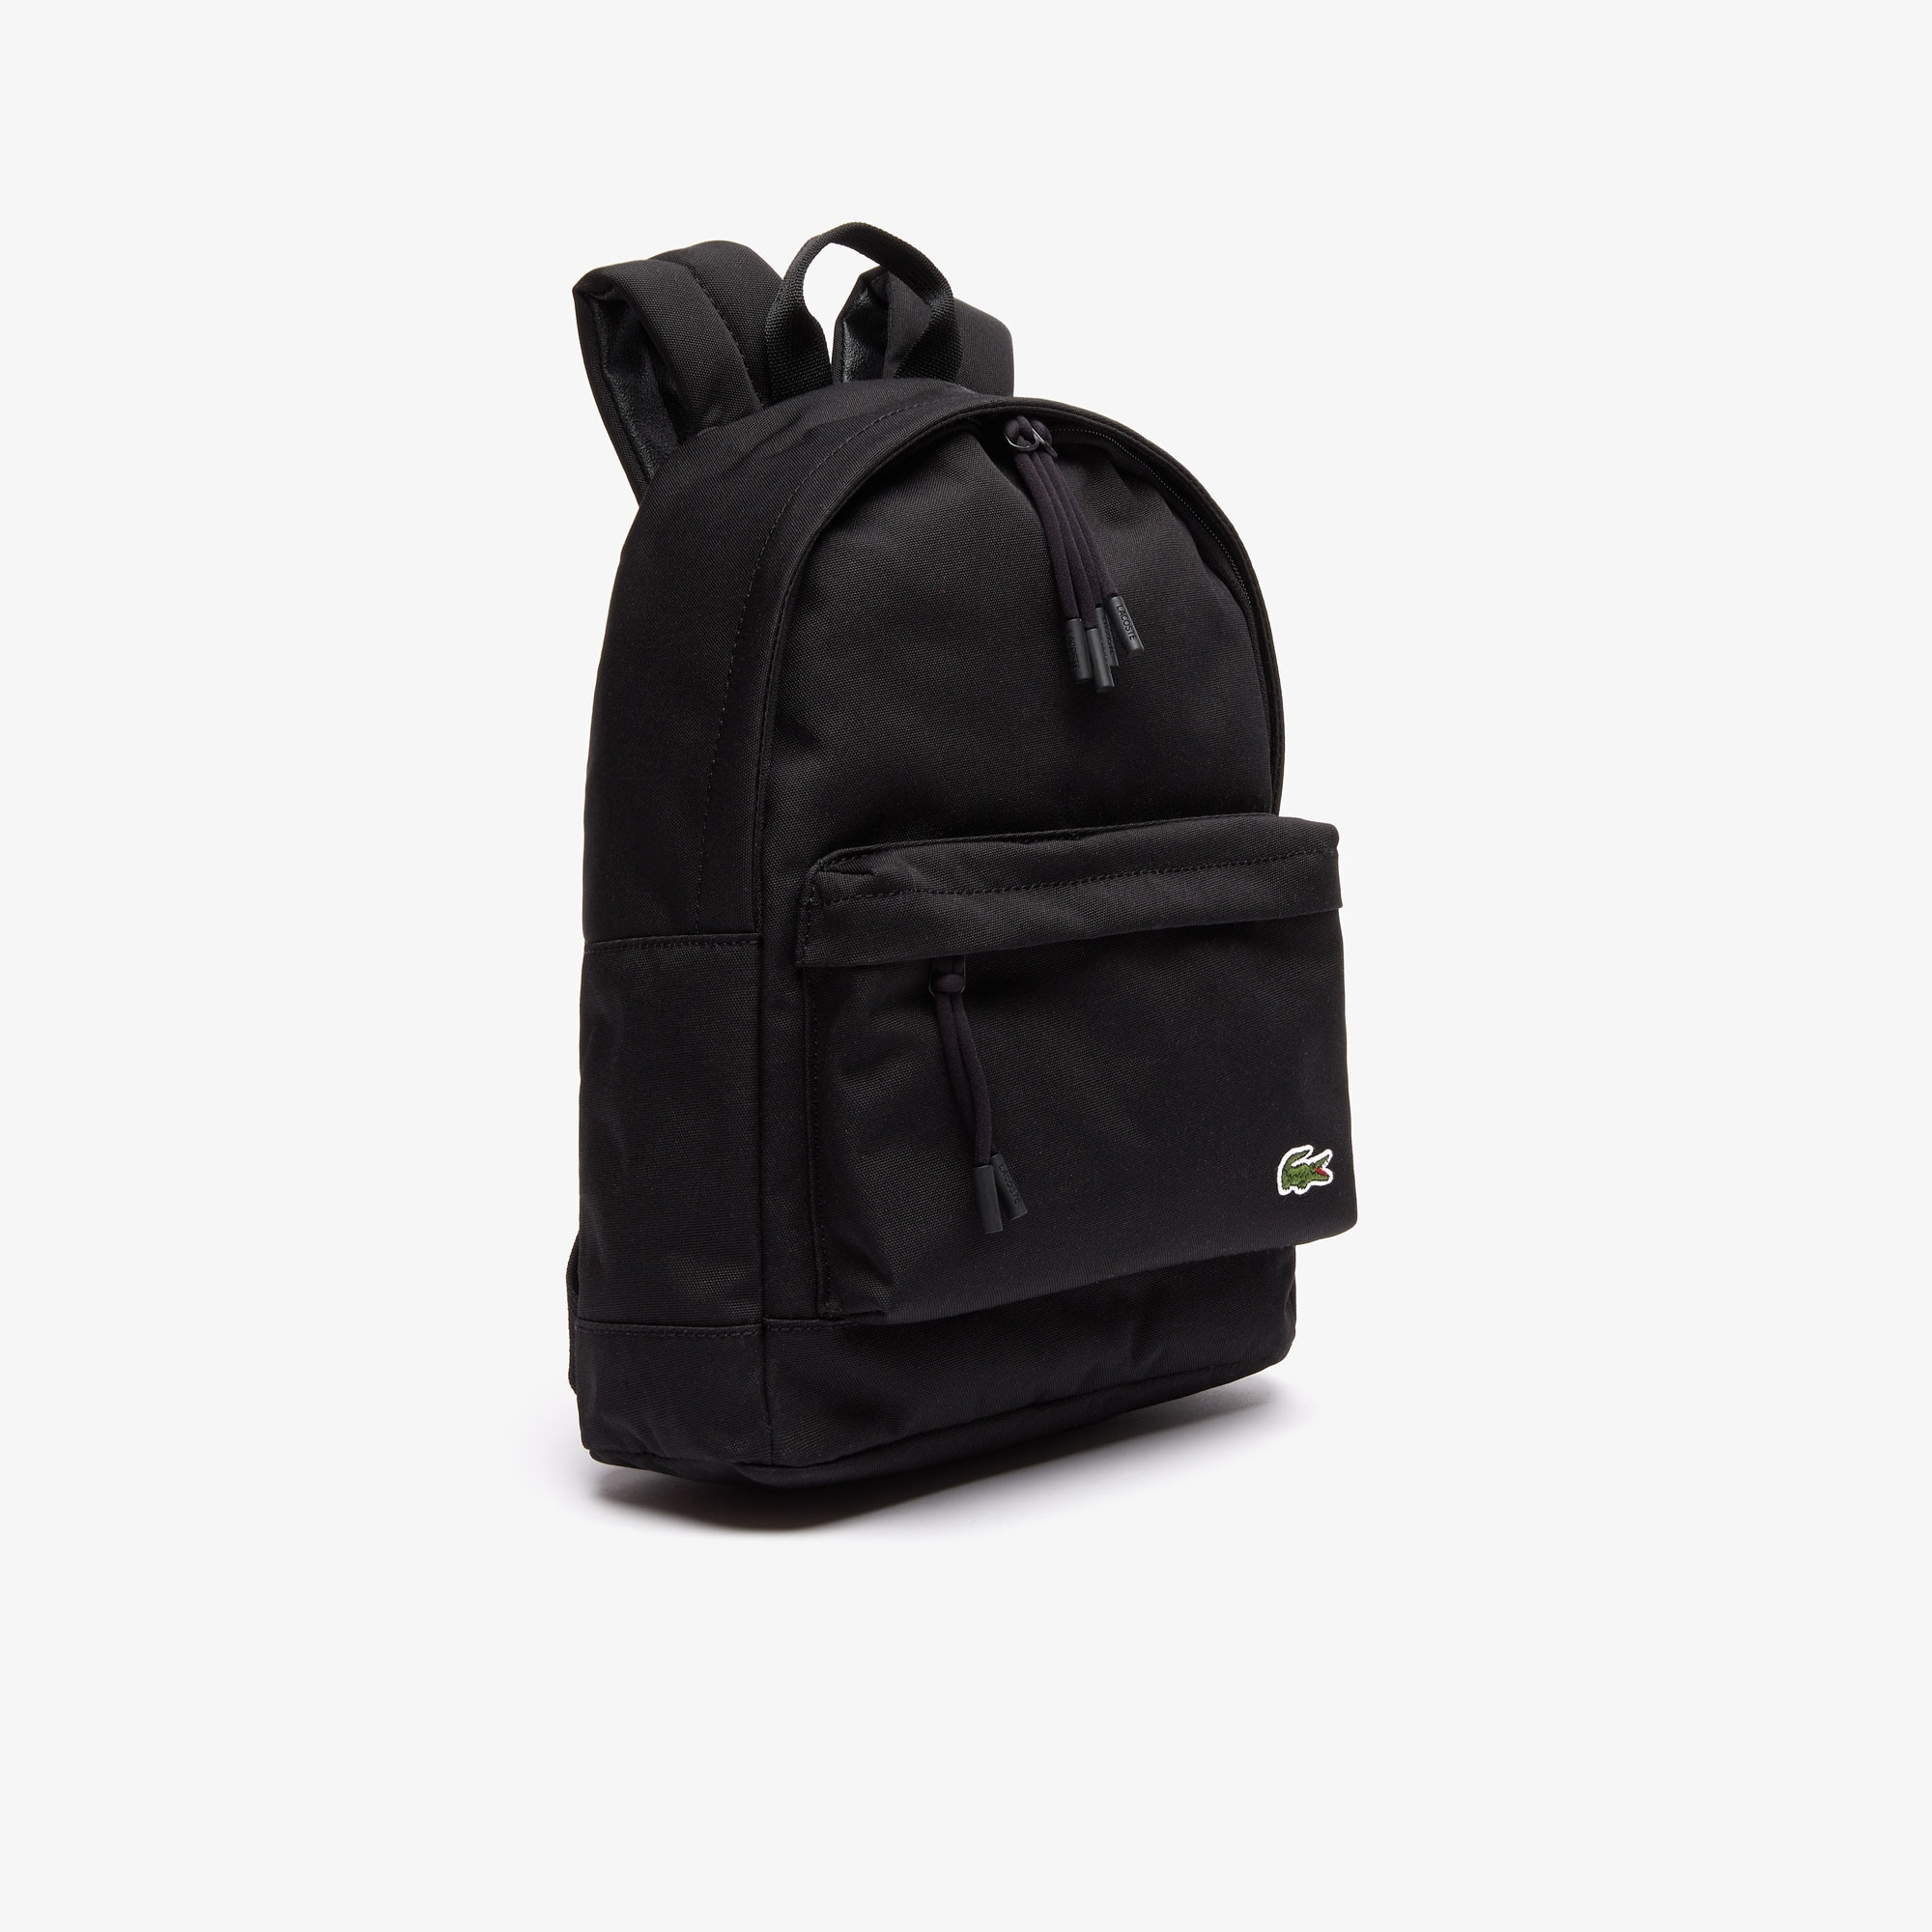 Men's Neocroc Small Canvas Backpack